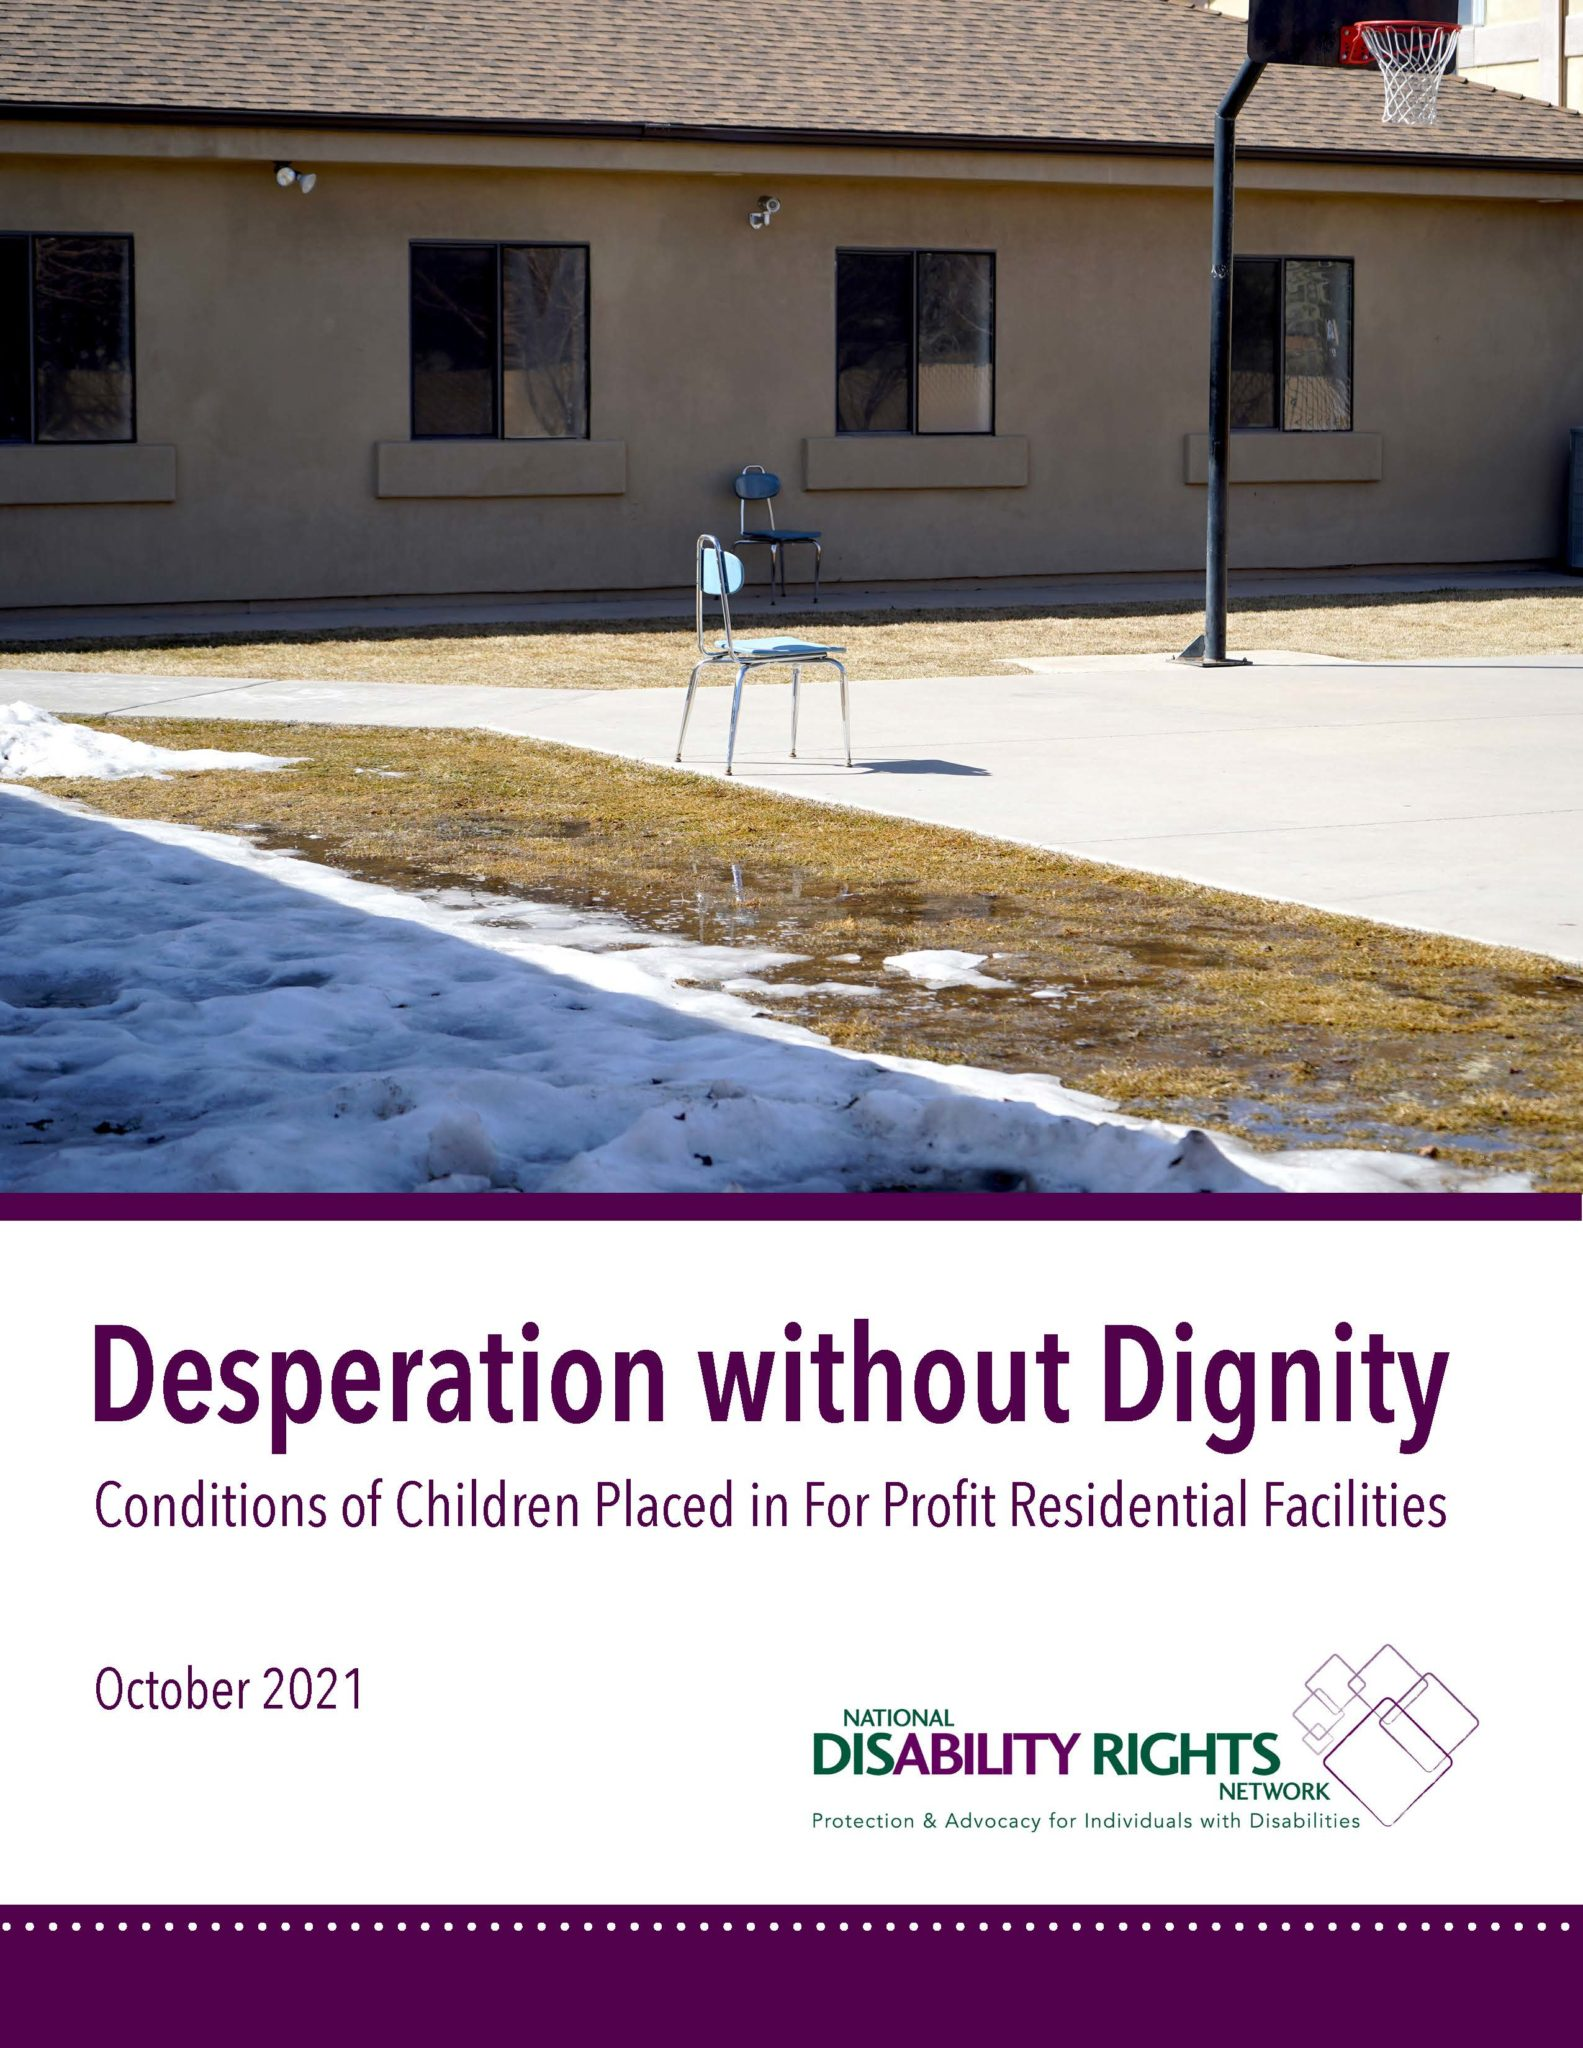 Title page with a chair on a basketball court with snow along the side. Text reads Desperation without Dignity: Conditions for Children Placed in For Profit Residential Facilities. October 2021 with NDRN logo.